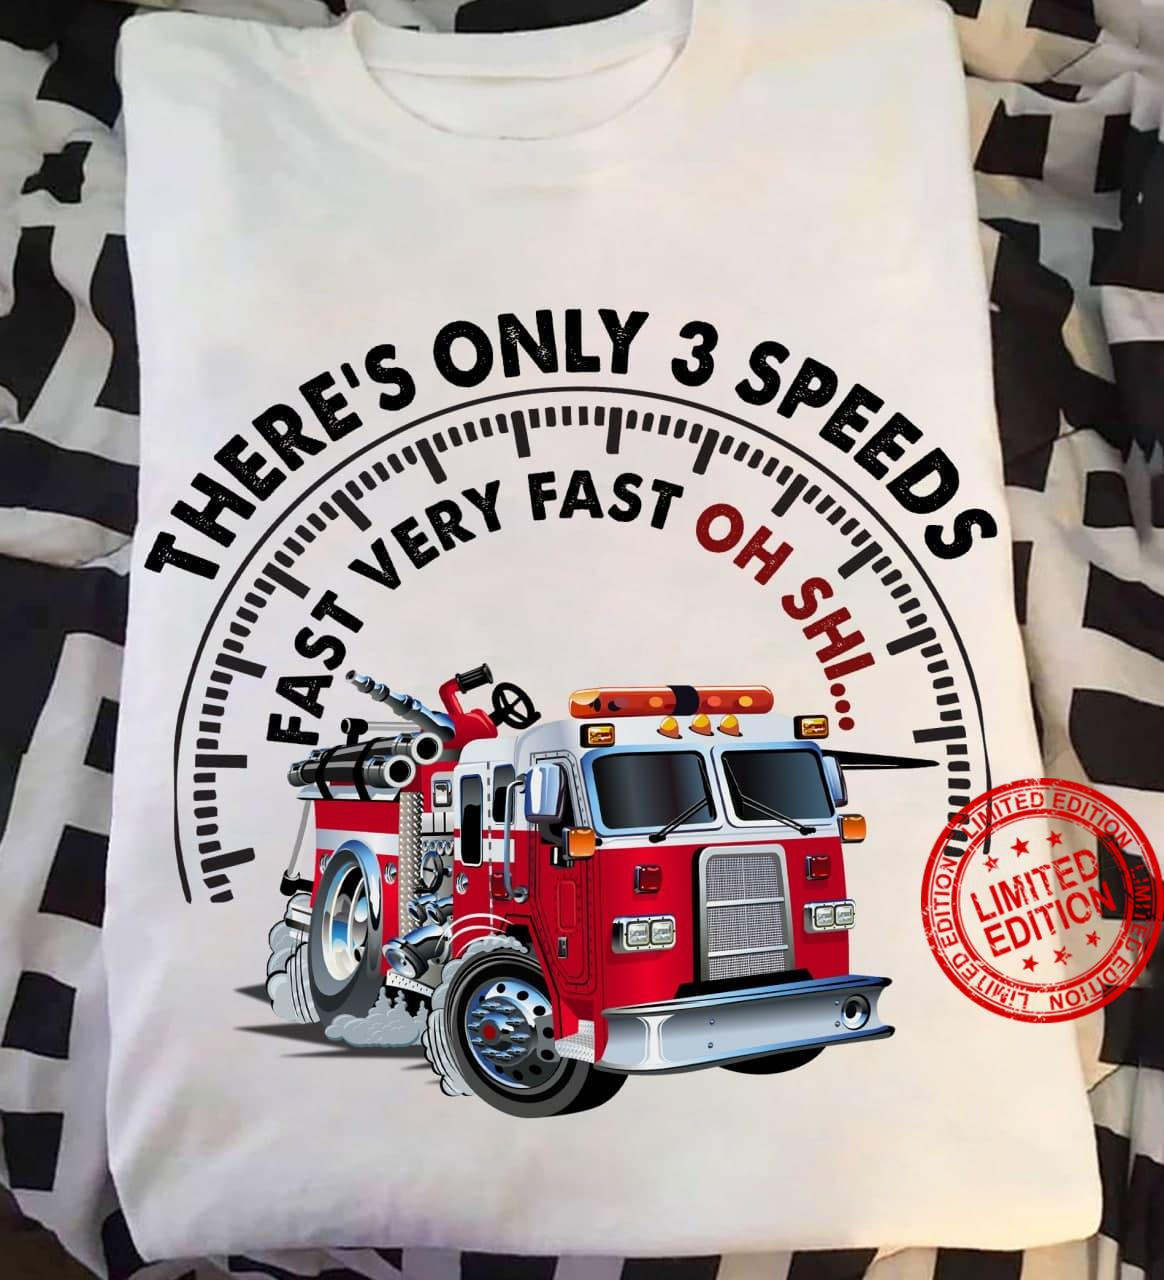 There's Only 3 Speeds Fast Very Fast Oh Shi Shirt